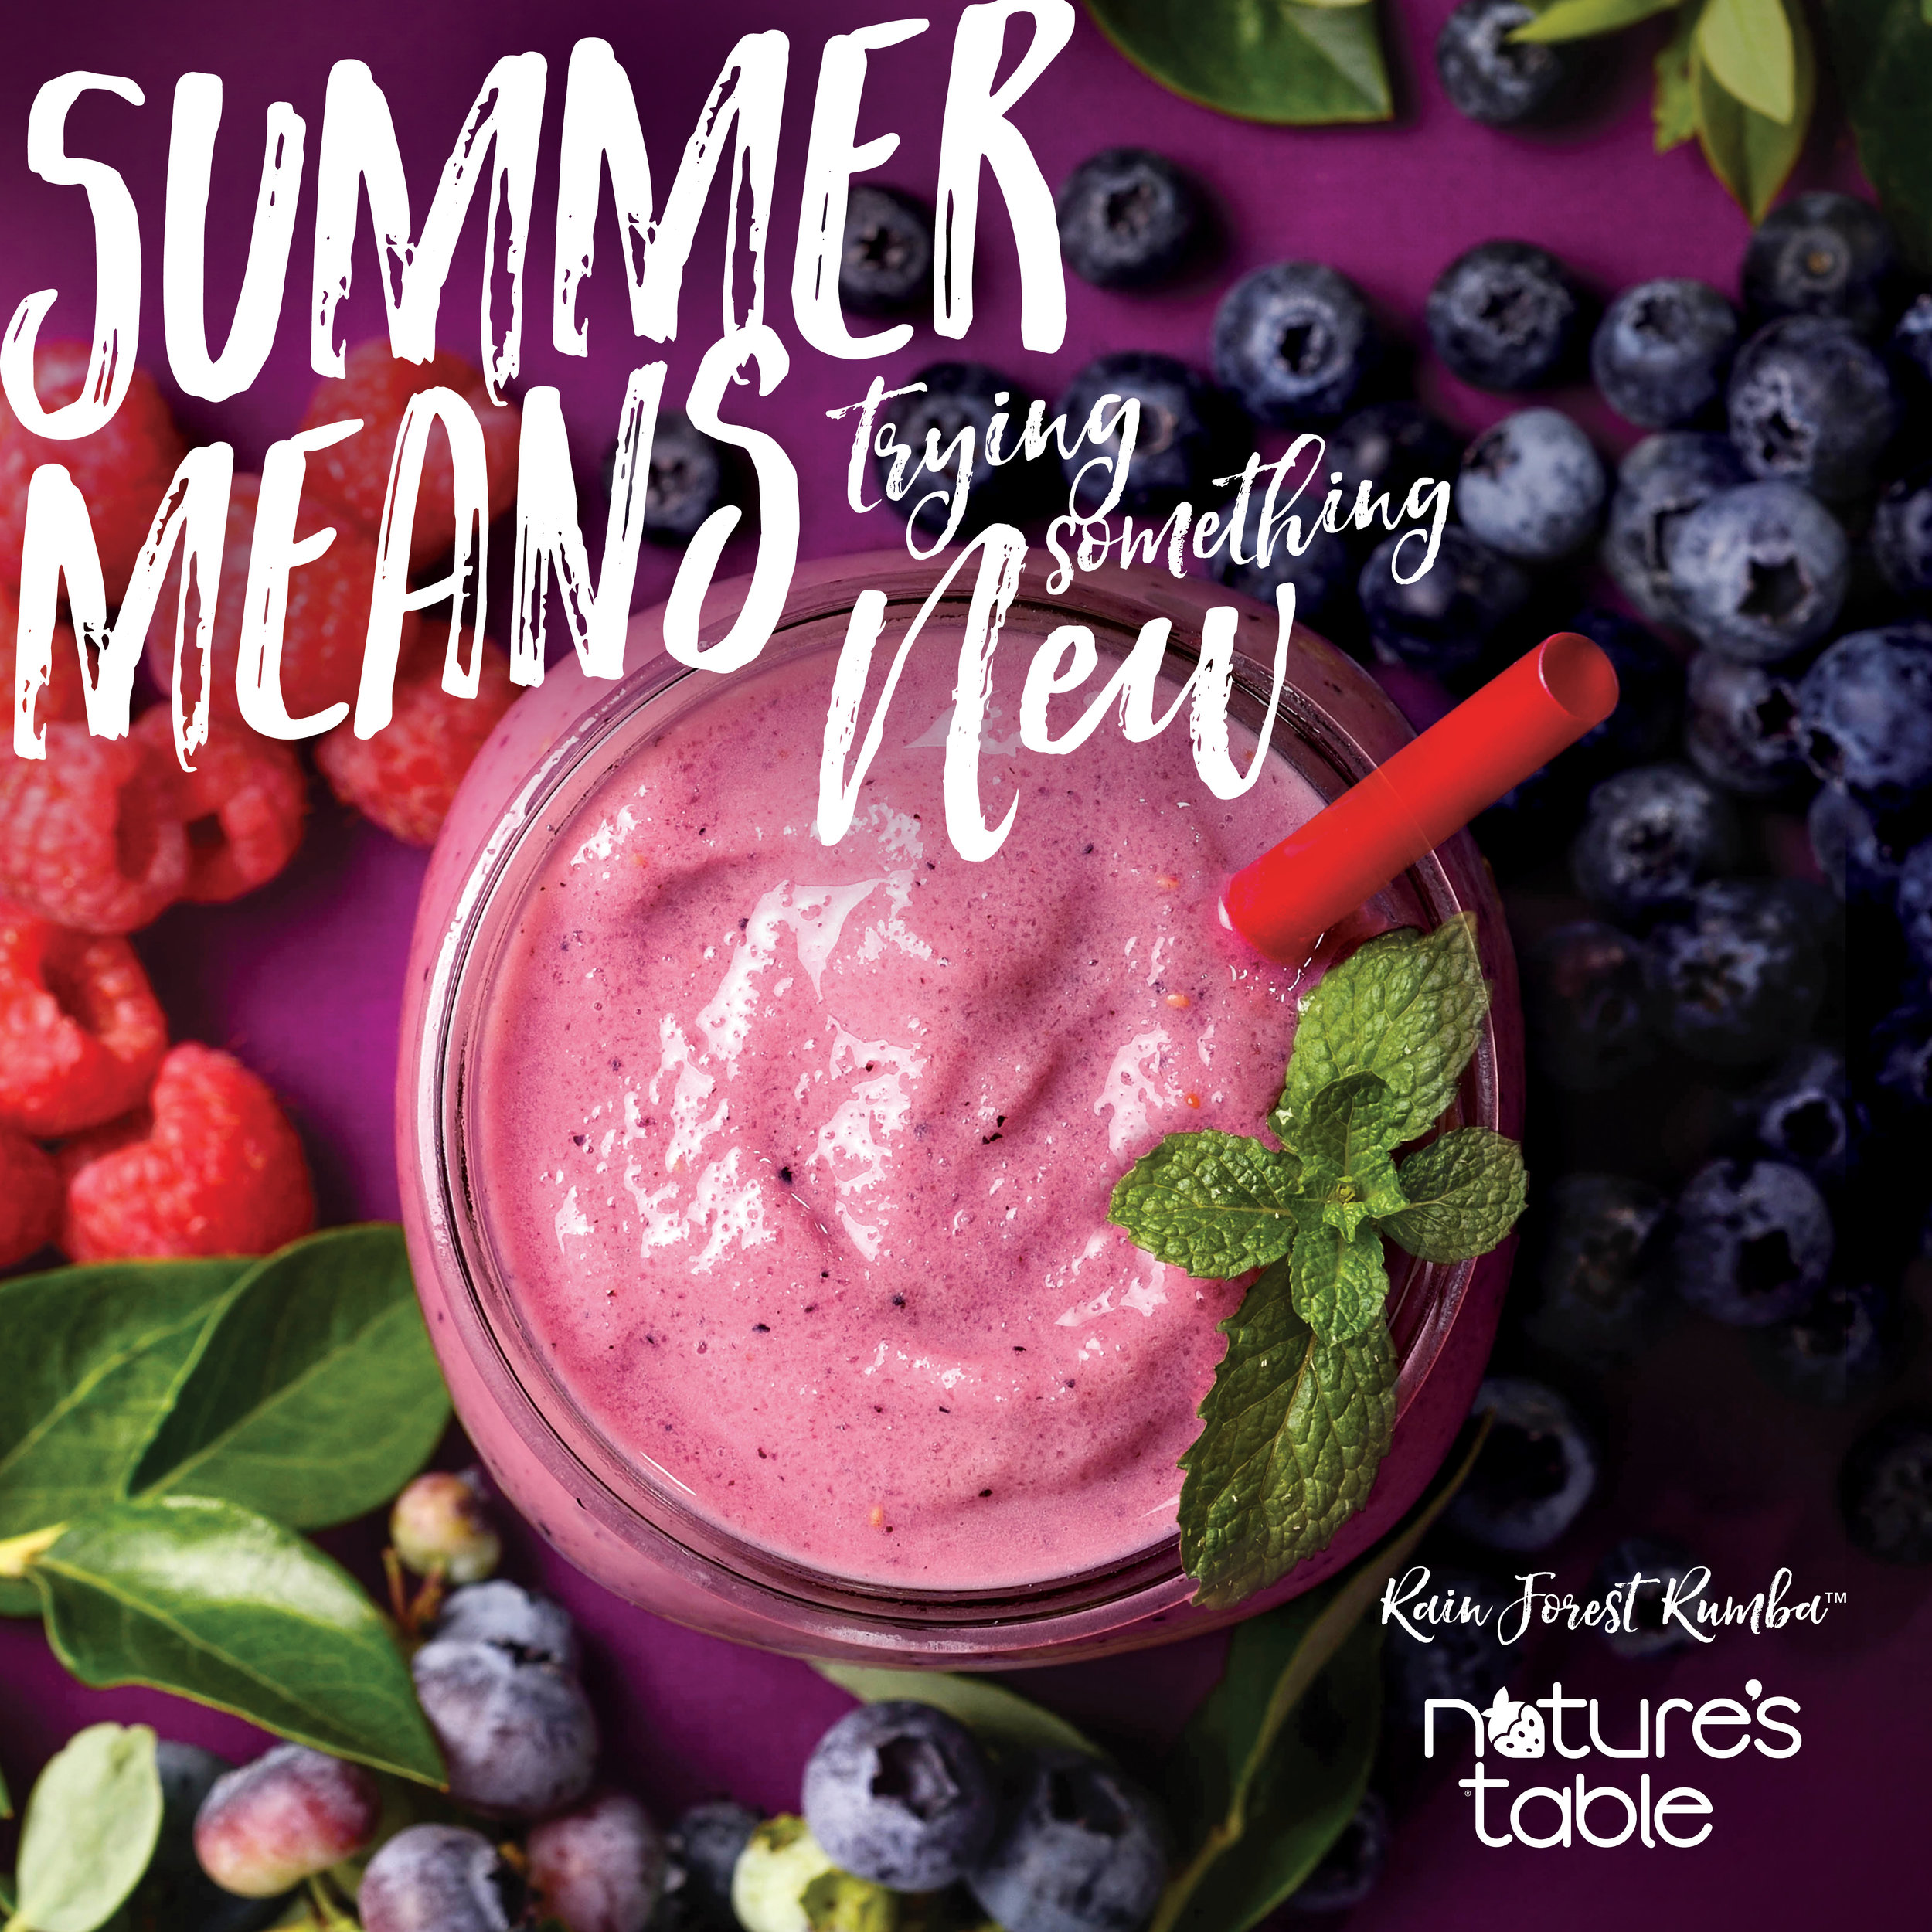 Nature's Table Seasonal Campaigns